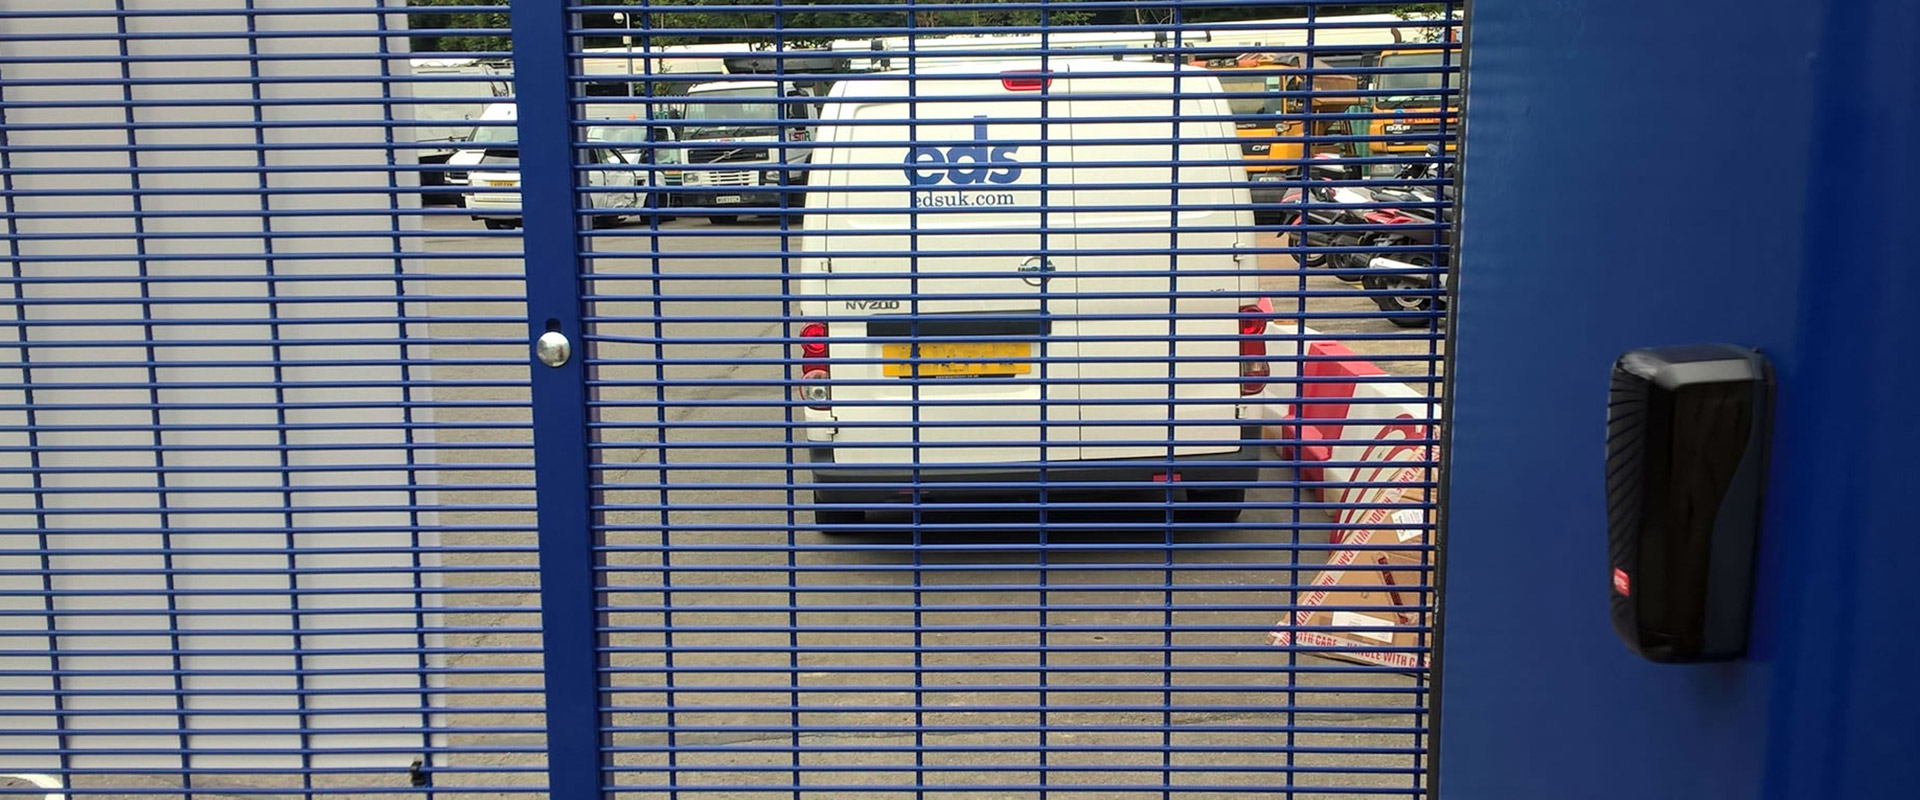 Photo looking through the mesh of the SpeedGate at a secure Metropolitan Police site.